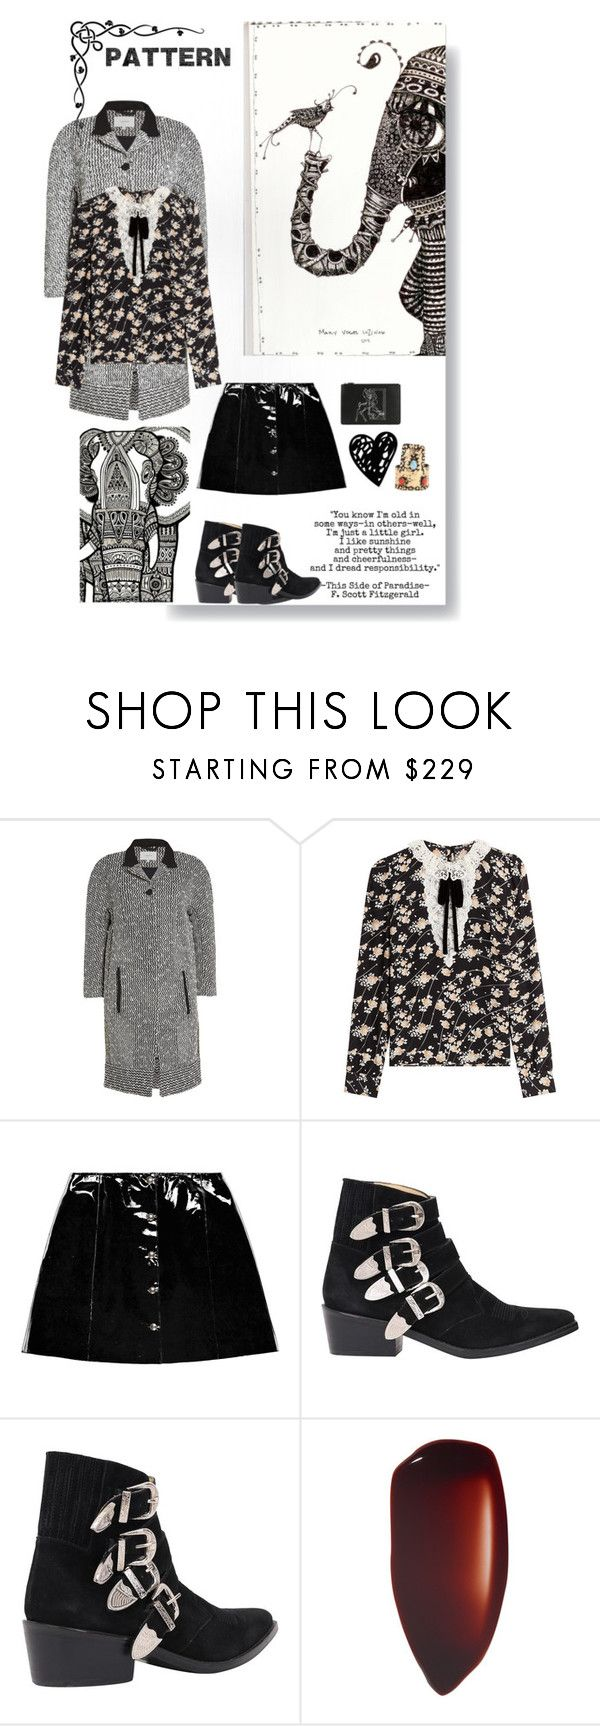 """""""Patterns"""" by sue-mes ❤ liked on Polyvore featuring Carven, The Kooples, Veil London, Toga and Givenchy"""